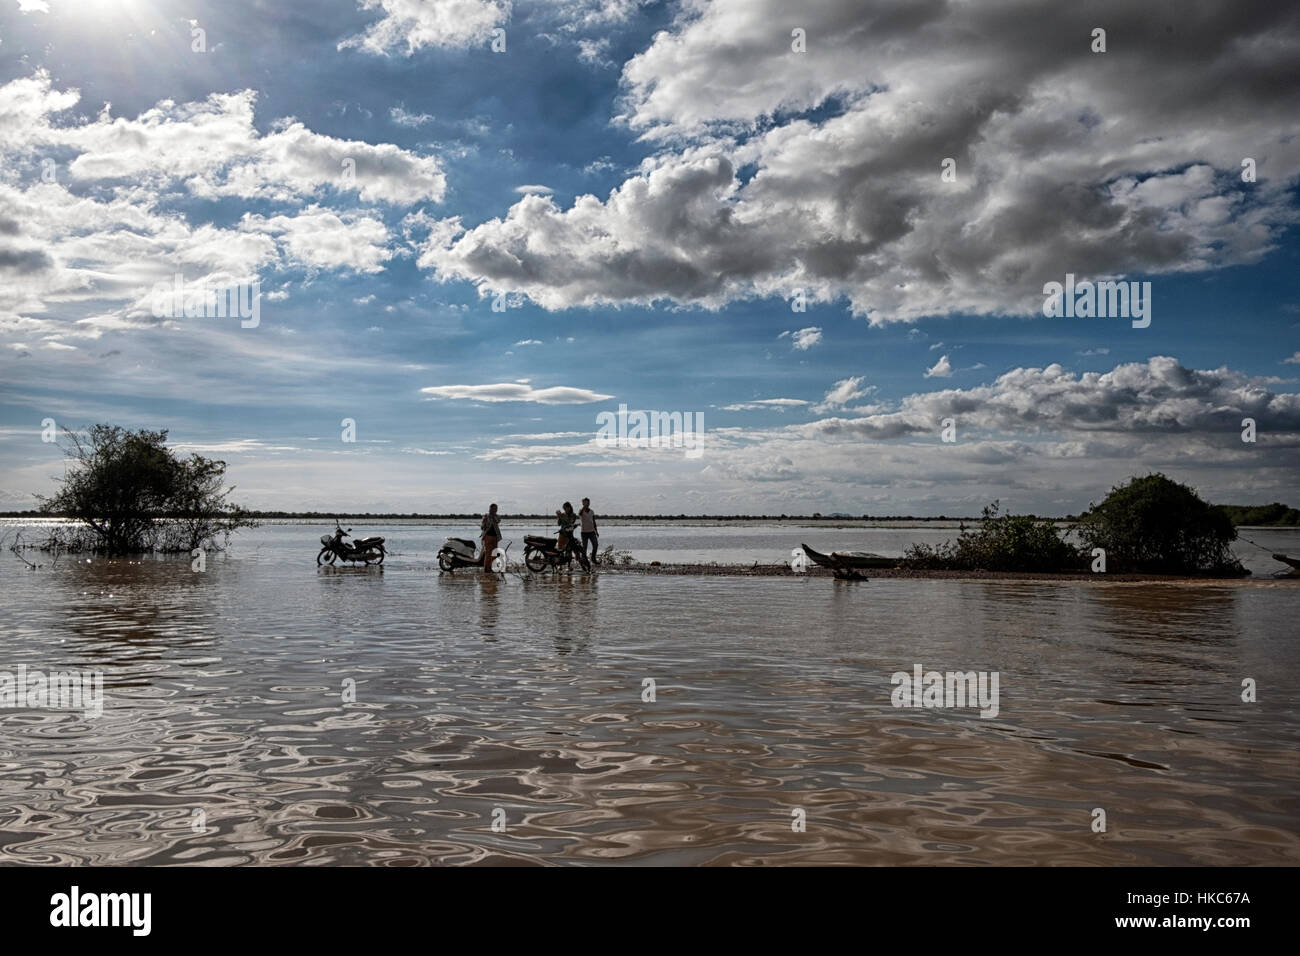 Tonle Sap Lake, Cambodia. - Stock Image